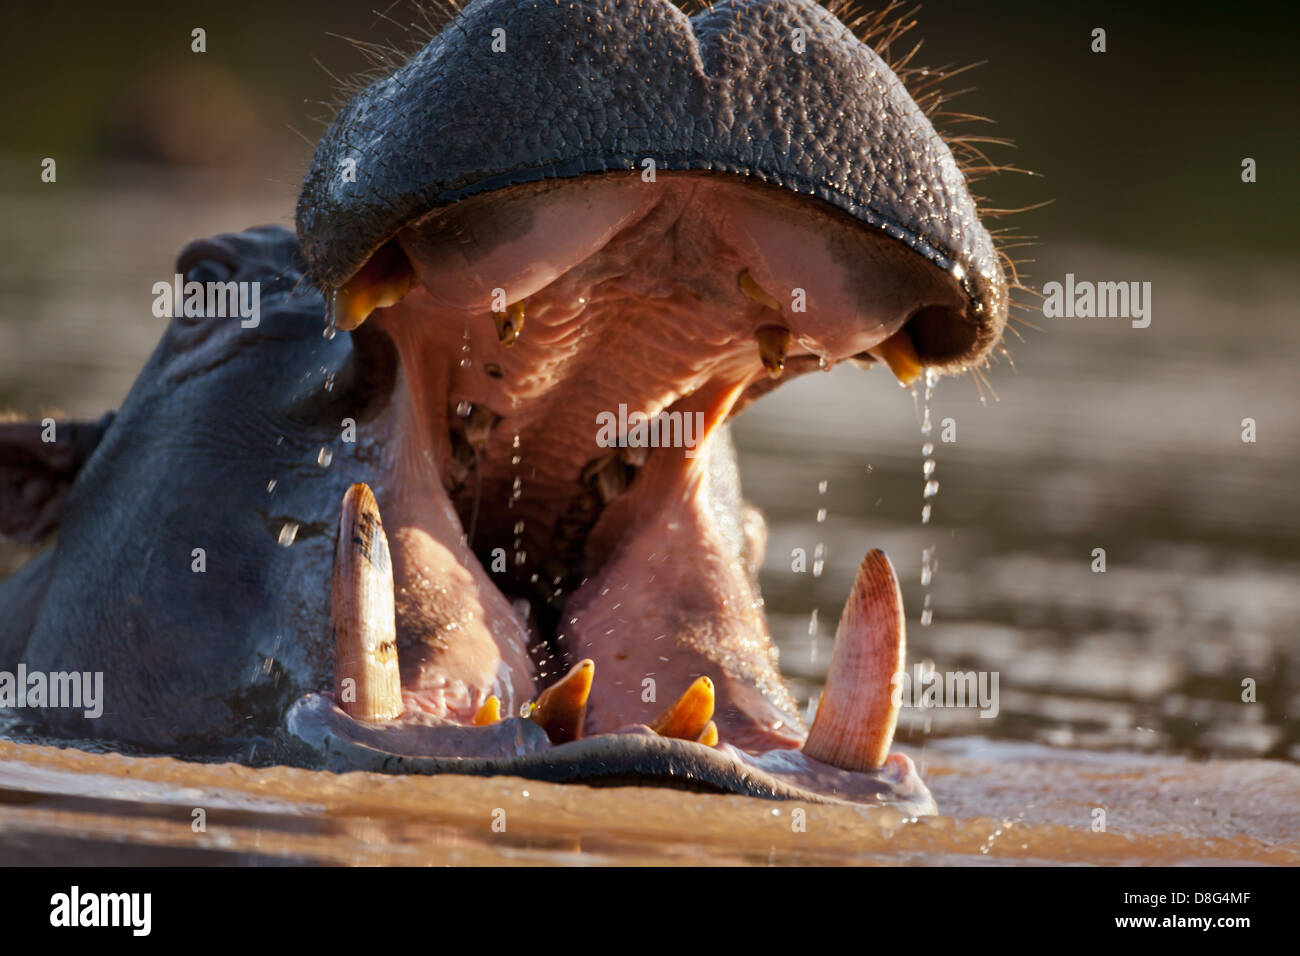 Hippopotamus(Hippopotamus amphibius) with mouth open in aggressive warning posture.South Africa - Stock Image